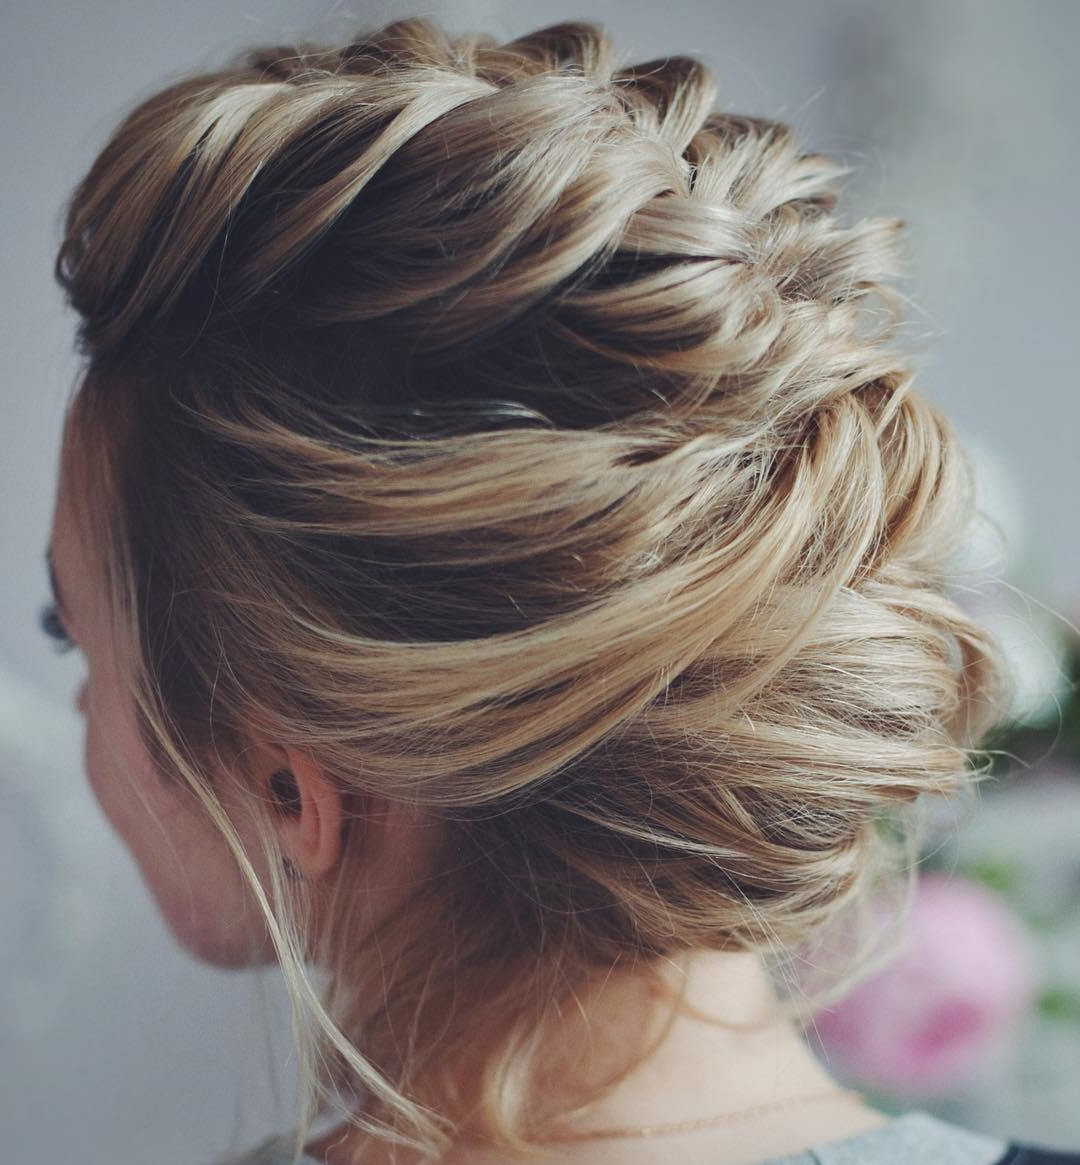 2017 Messy Bun Wedding Hairstyles For Shorter Hair With Regard To 50 Hottest Prom Hairstyles For Short Hair (Gallery 12 of 20)